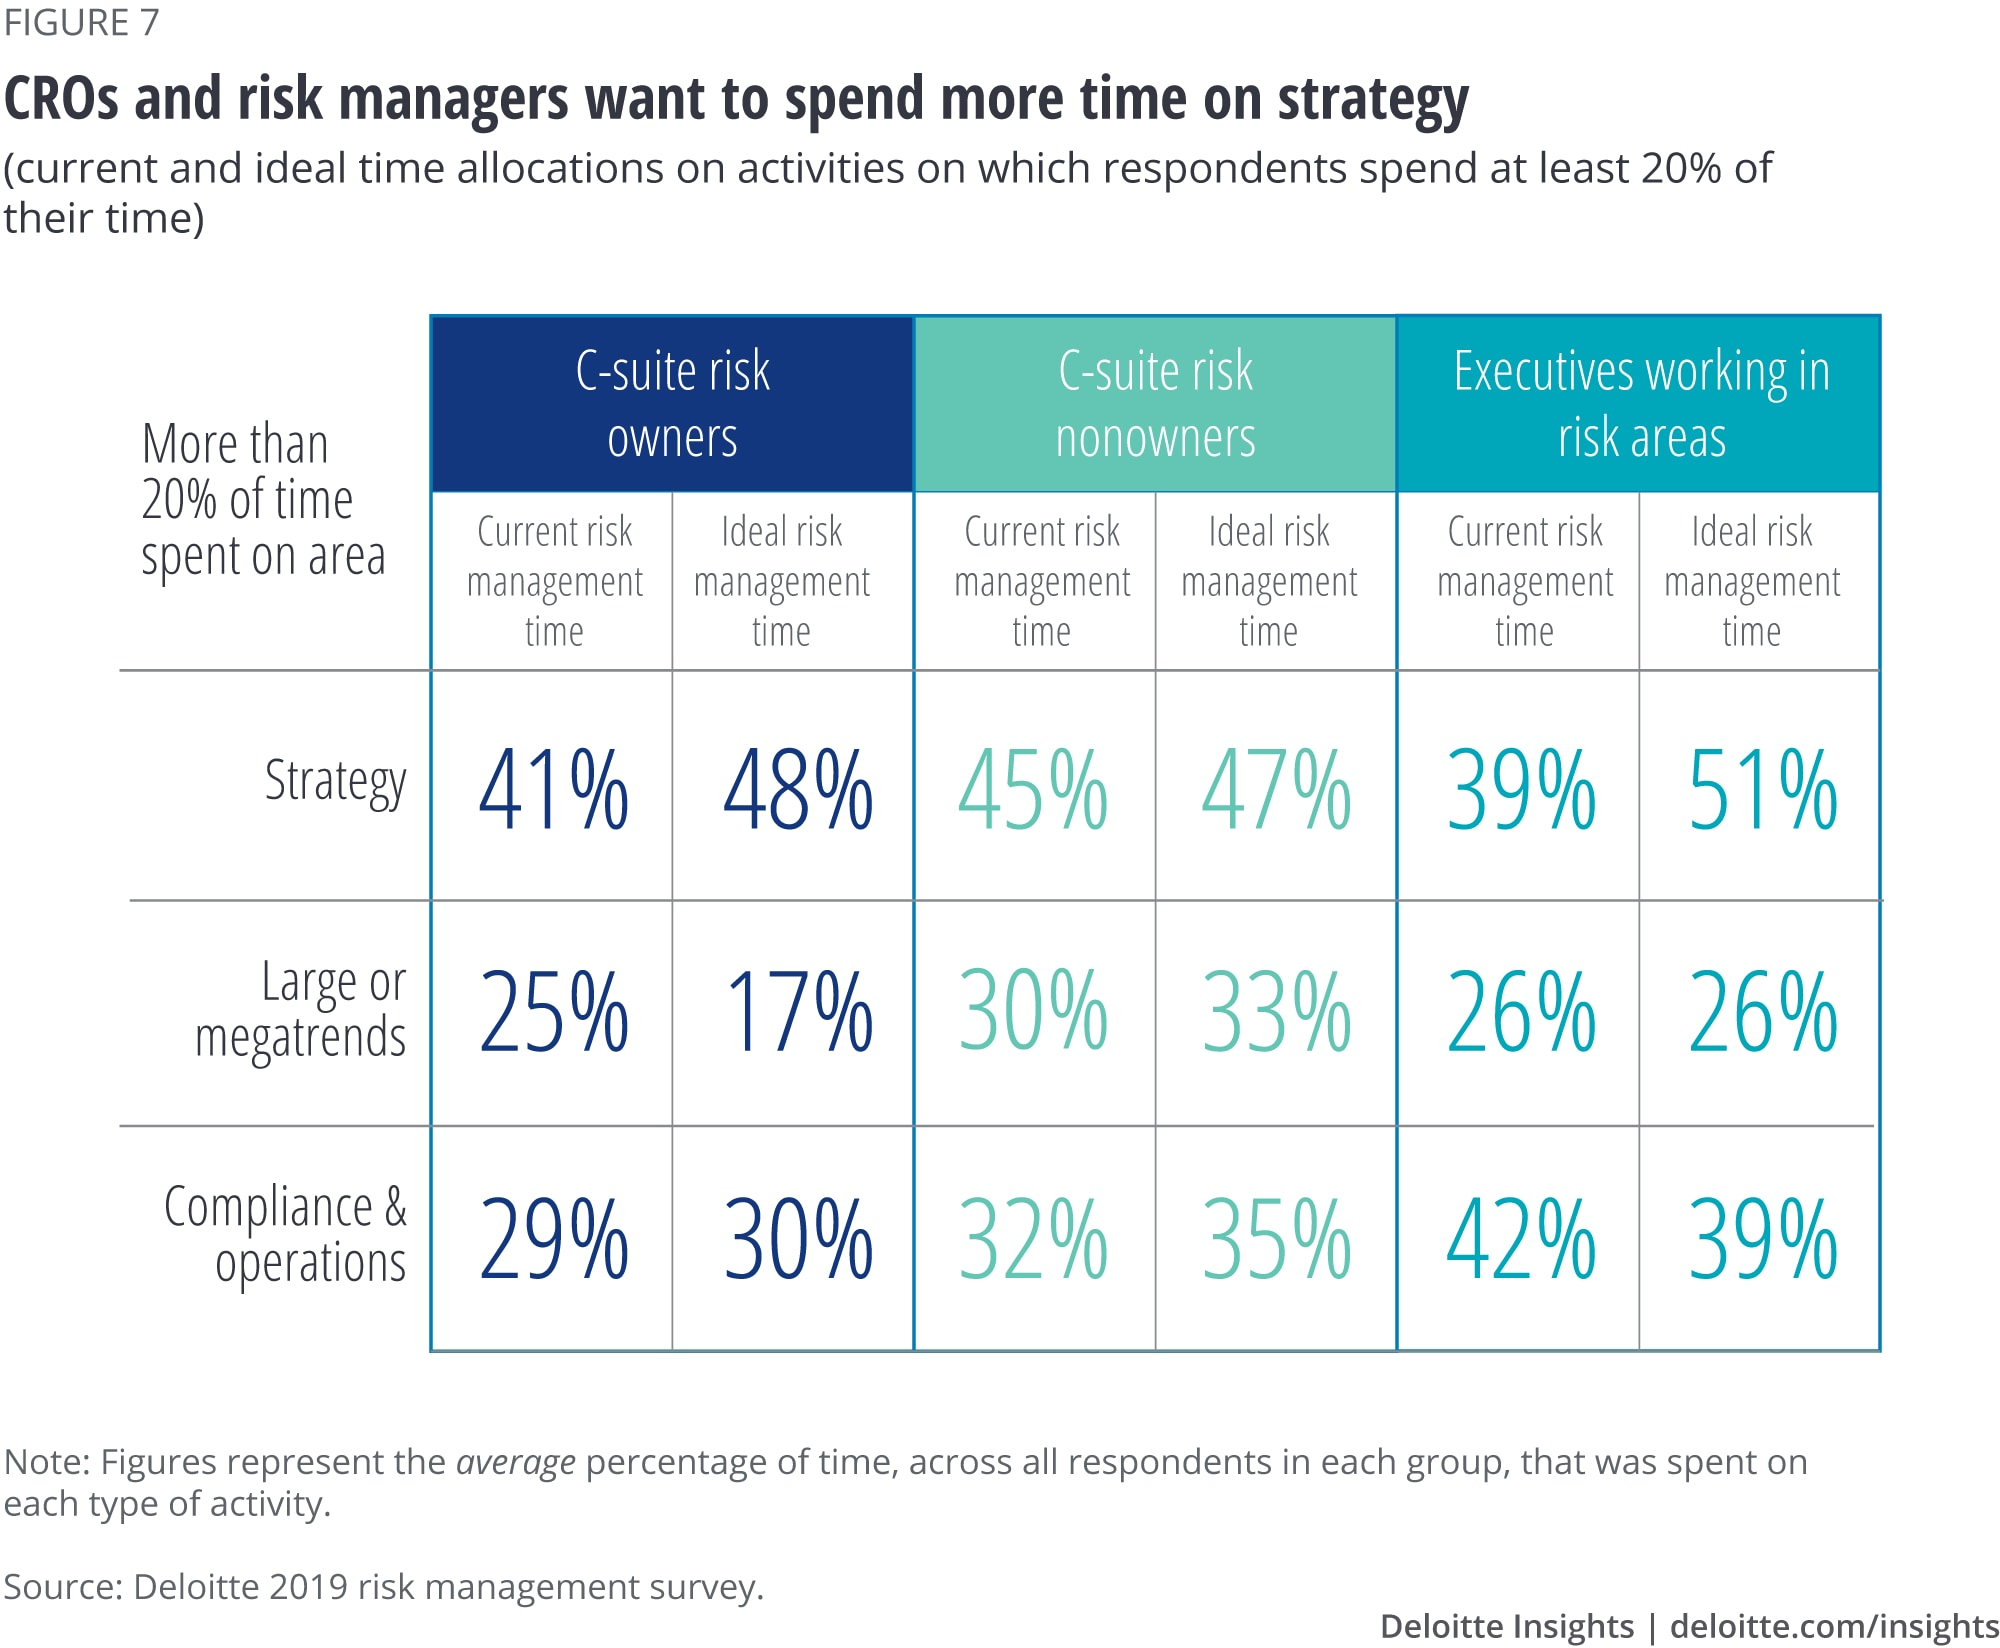 CROs and risk managers want to spend more time on strategy